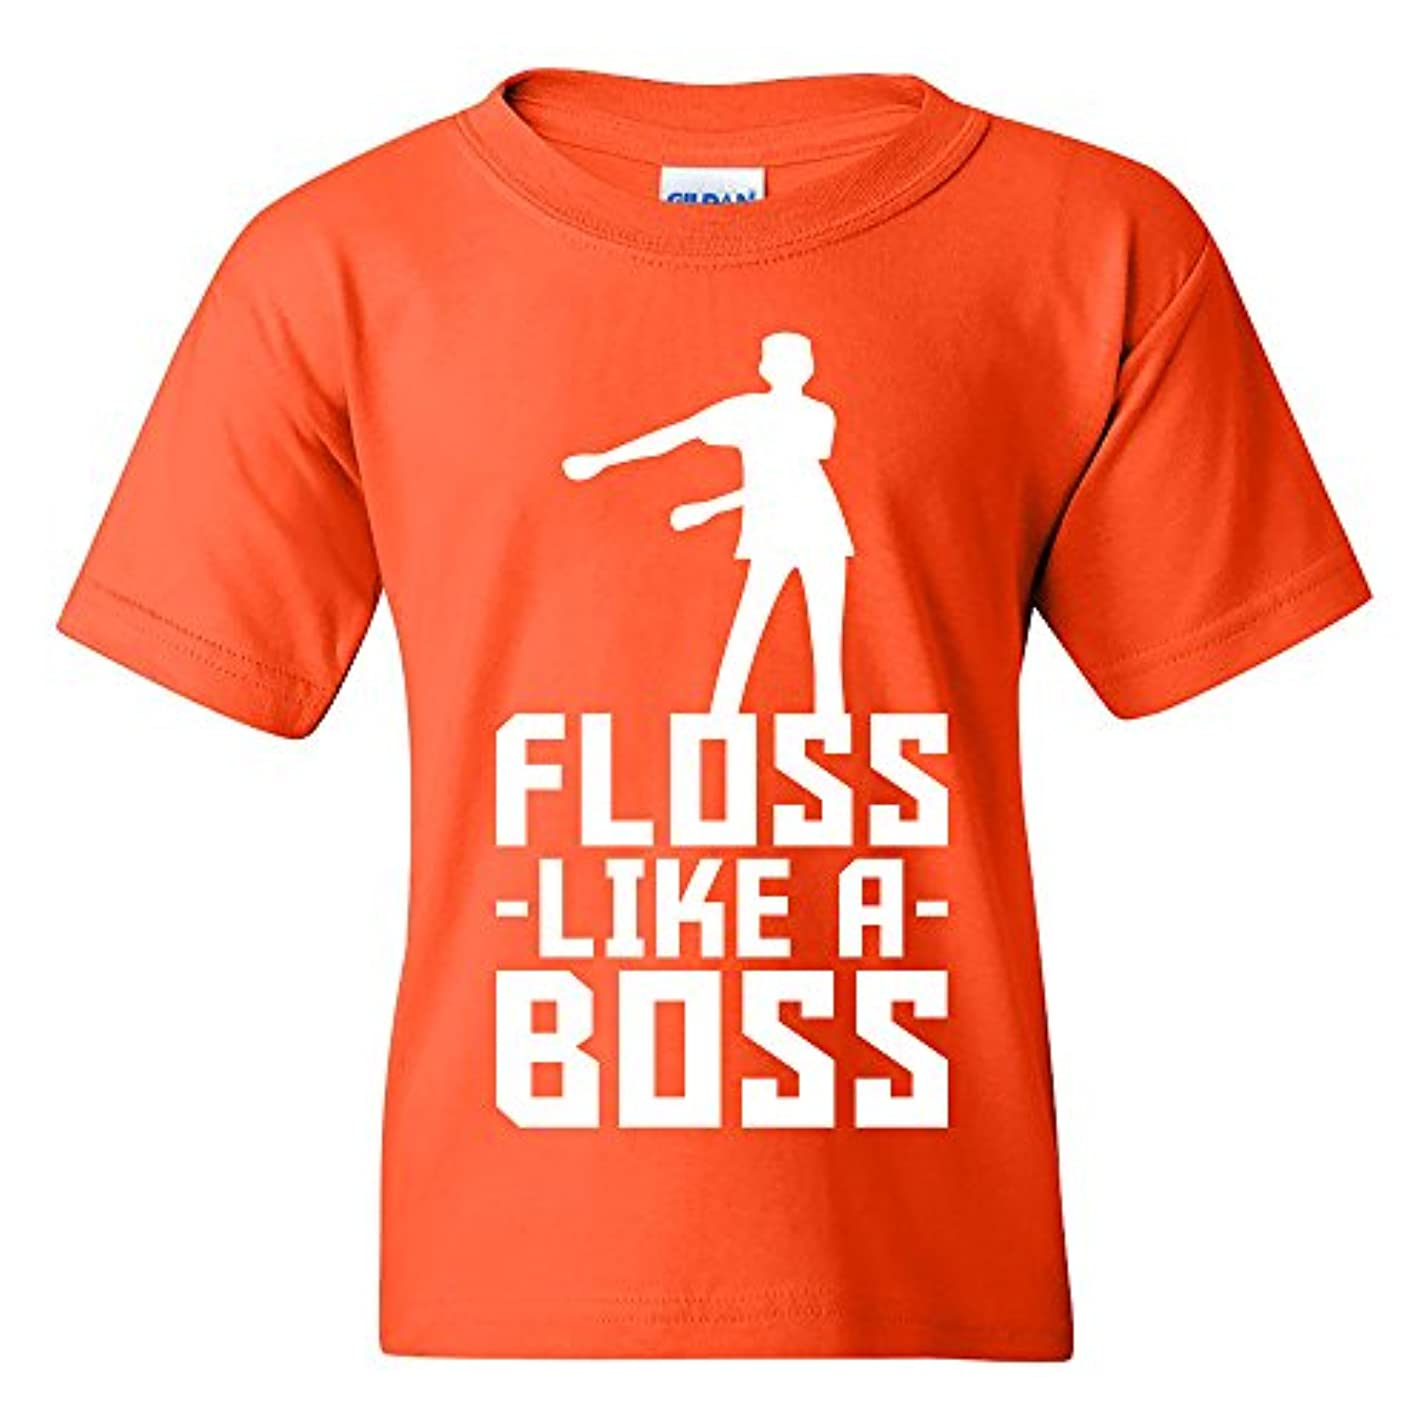 Kids Floss Like A Boss - Flossin Dance Funny Emote Youth T Shirt of30279865